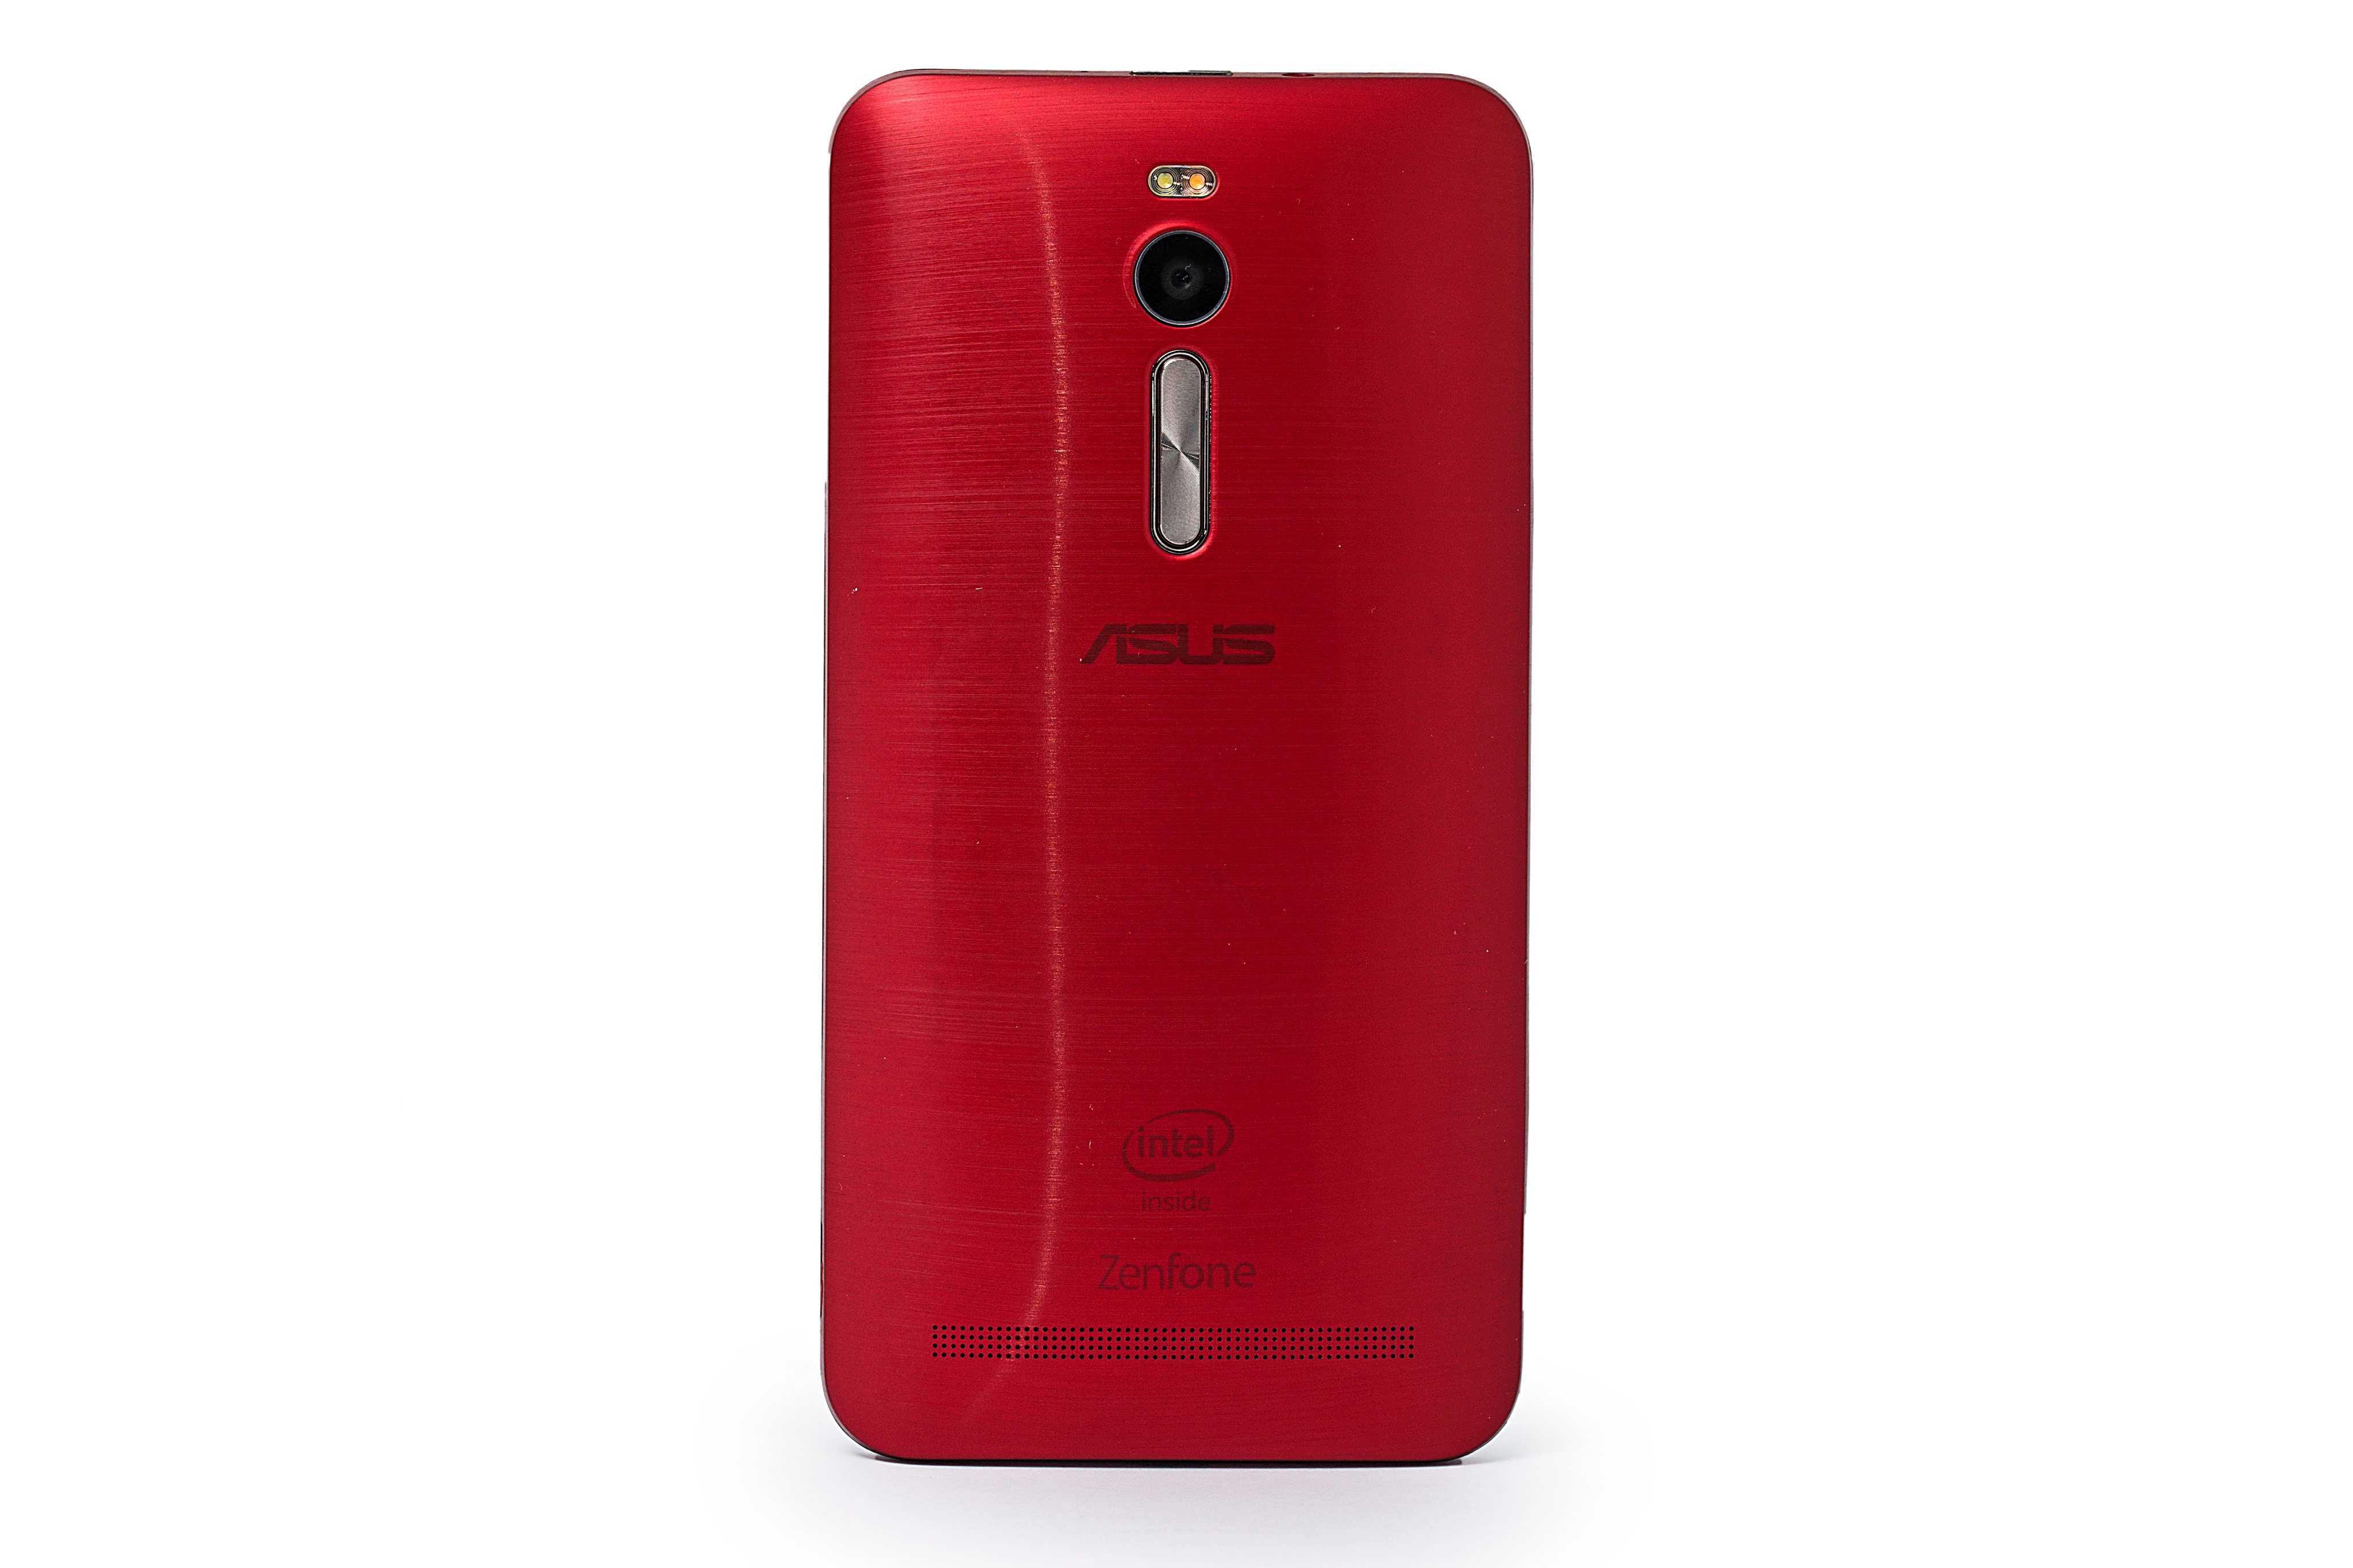 The ergonomic design resulted in a curved rear cover which offers better grip and improved insulation against heat buildup.